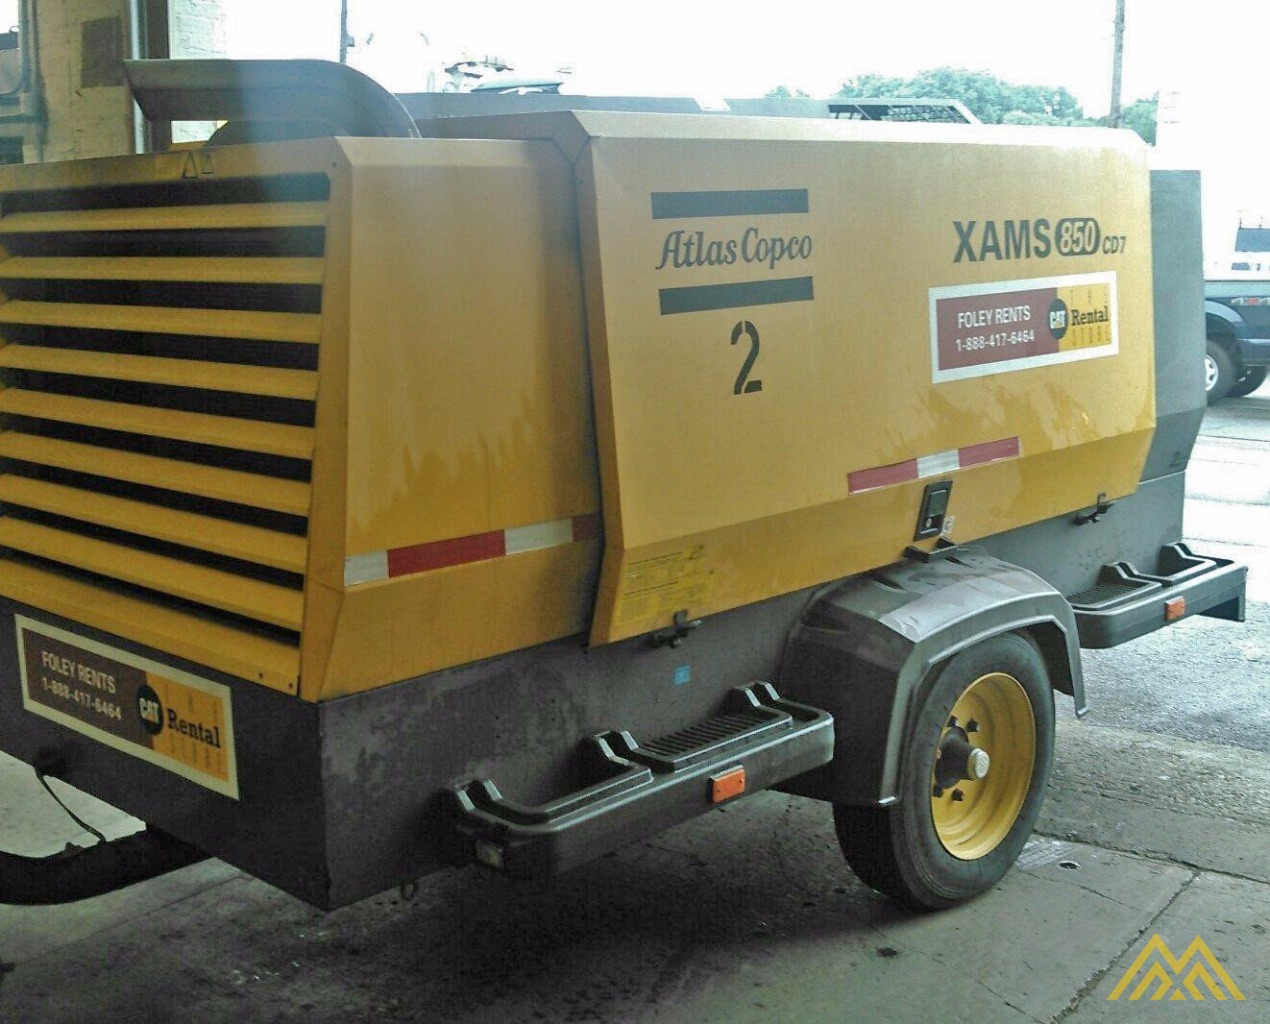 Atlas Copco XAMS 850 CD7 Air Compressor 1